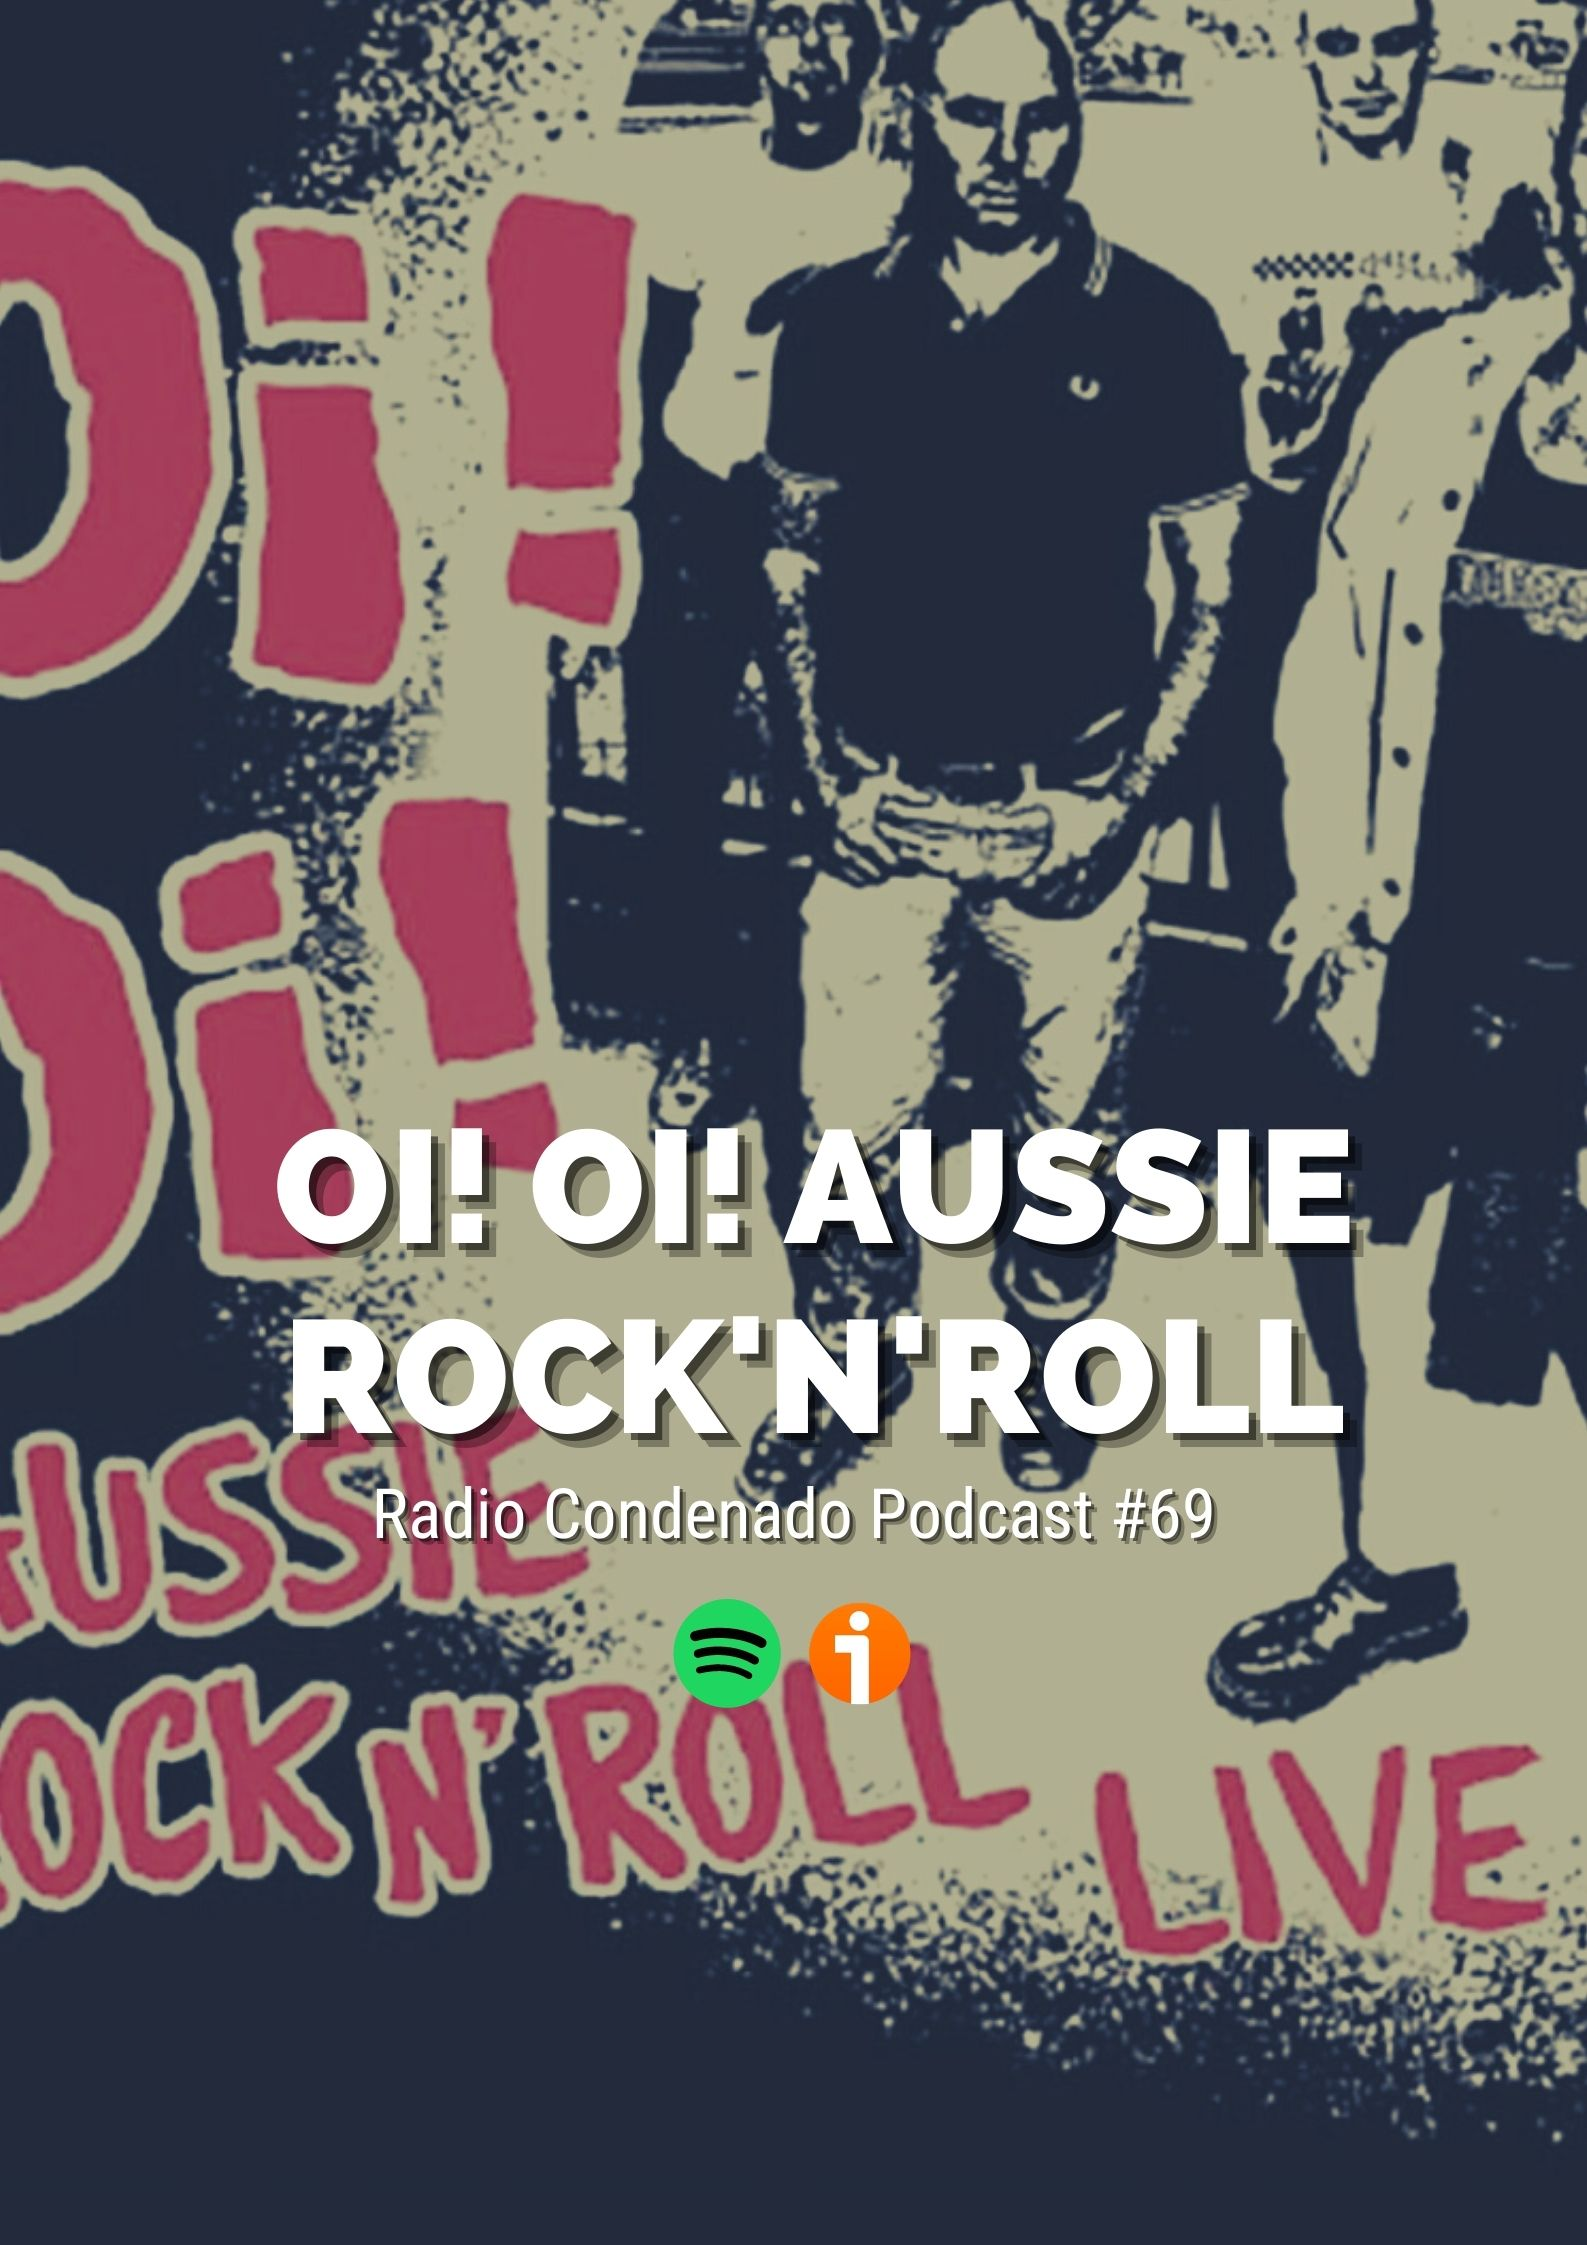 Cartel del podcast Radio Condenado #69 | Oi! Oi! Aussie Rock'n'Roll